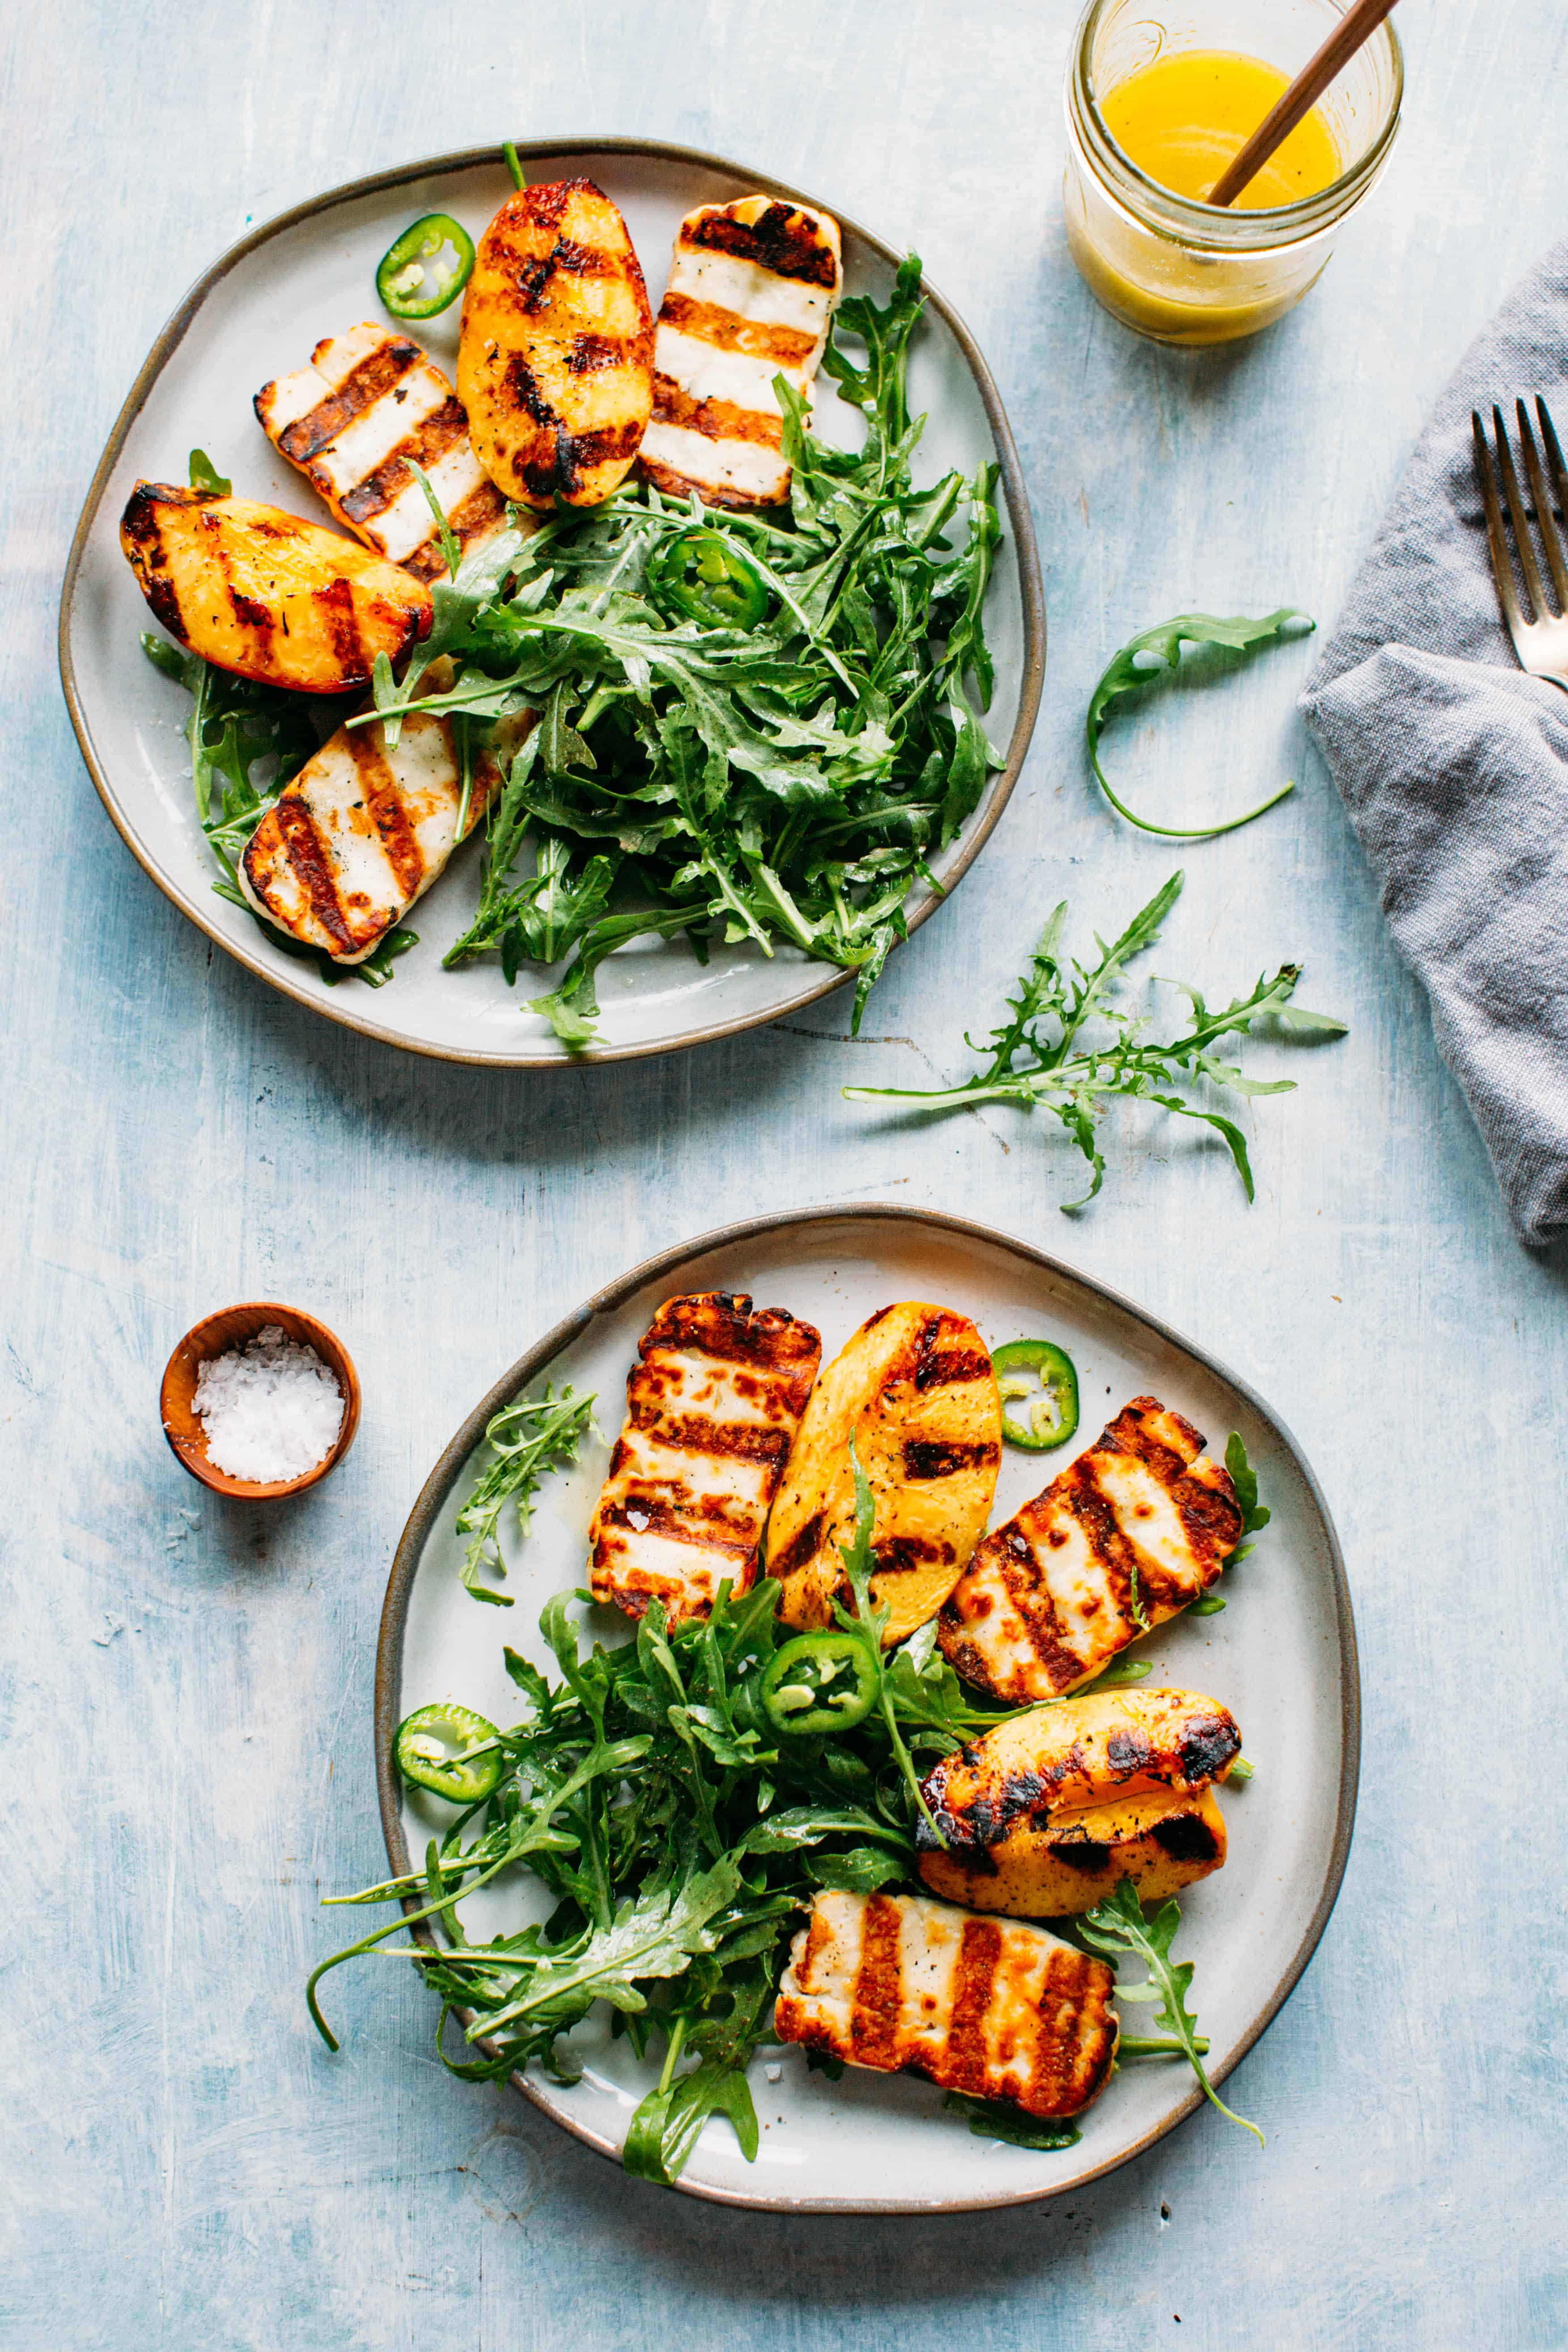 Grilled Halloumi Peaches With Arugula Jalapeños And A Honey Lemon Vinaigrette Coley Cooks